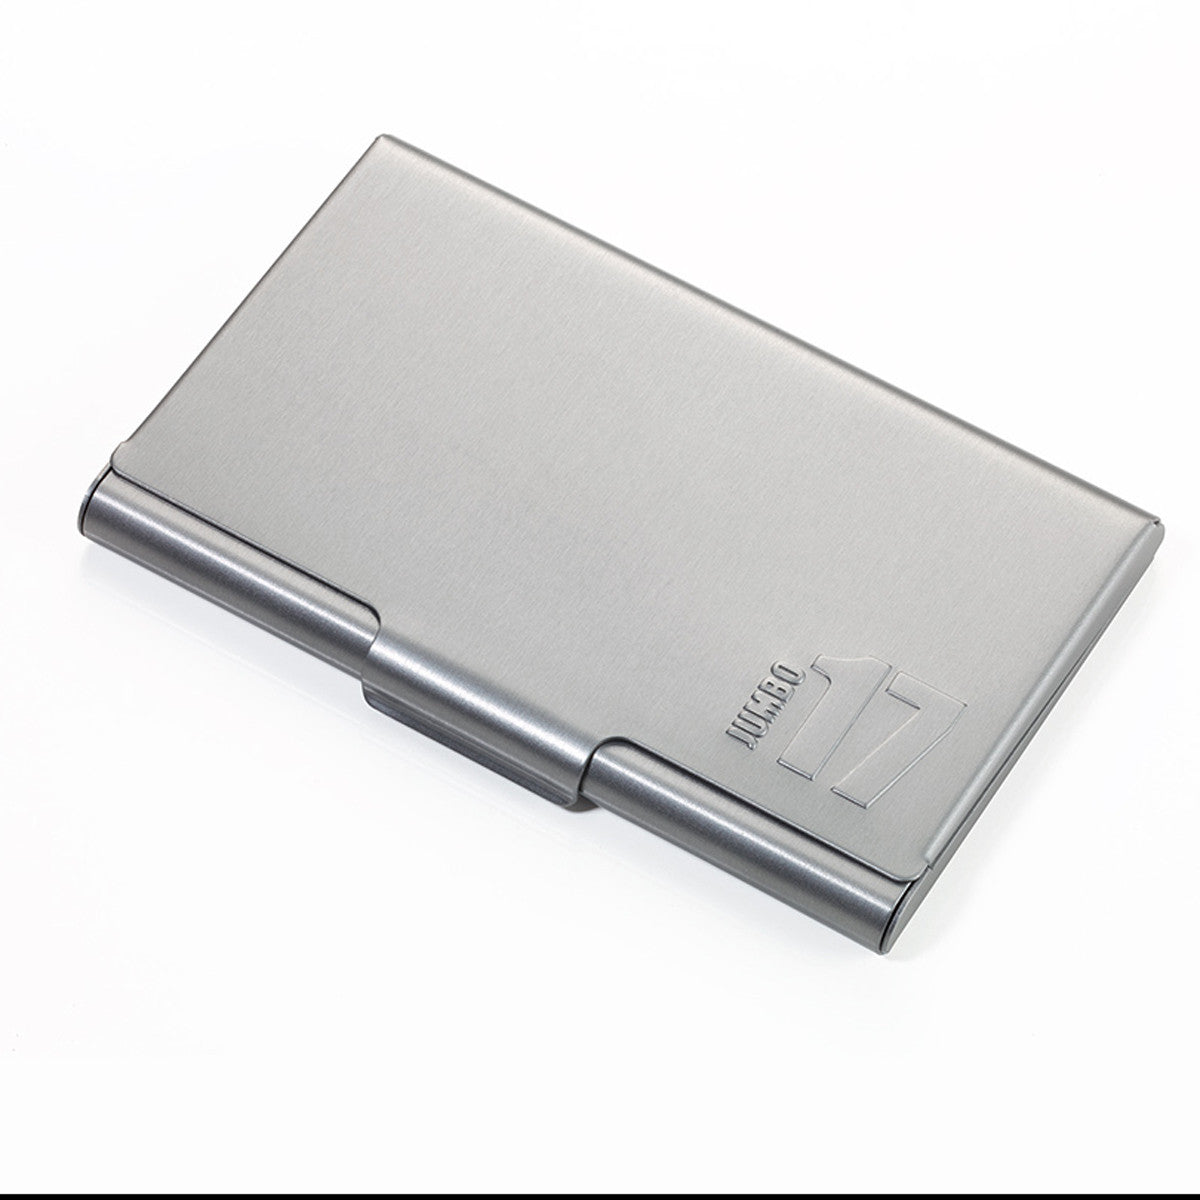 Troika Jumbo 17 Business Card Case with Number Emboss | Troikaus.com